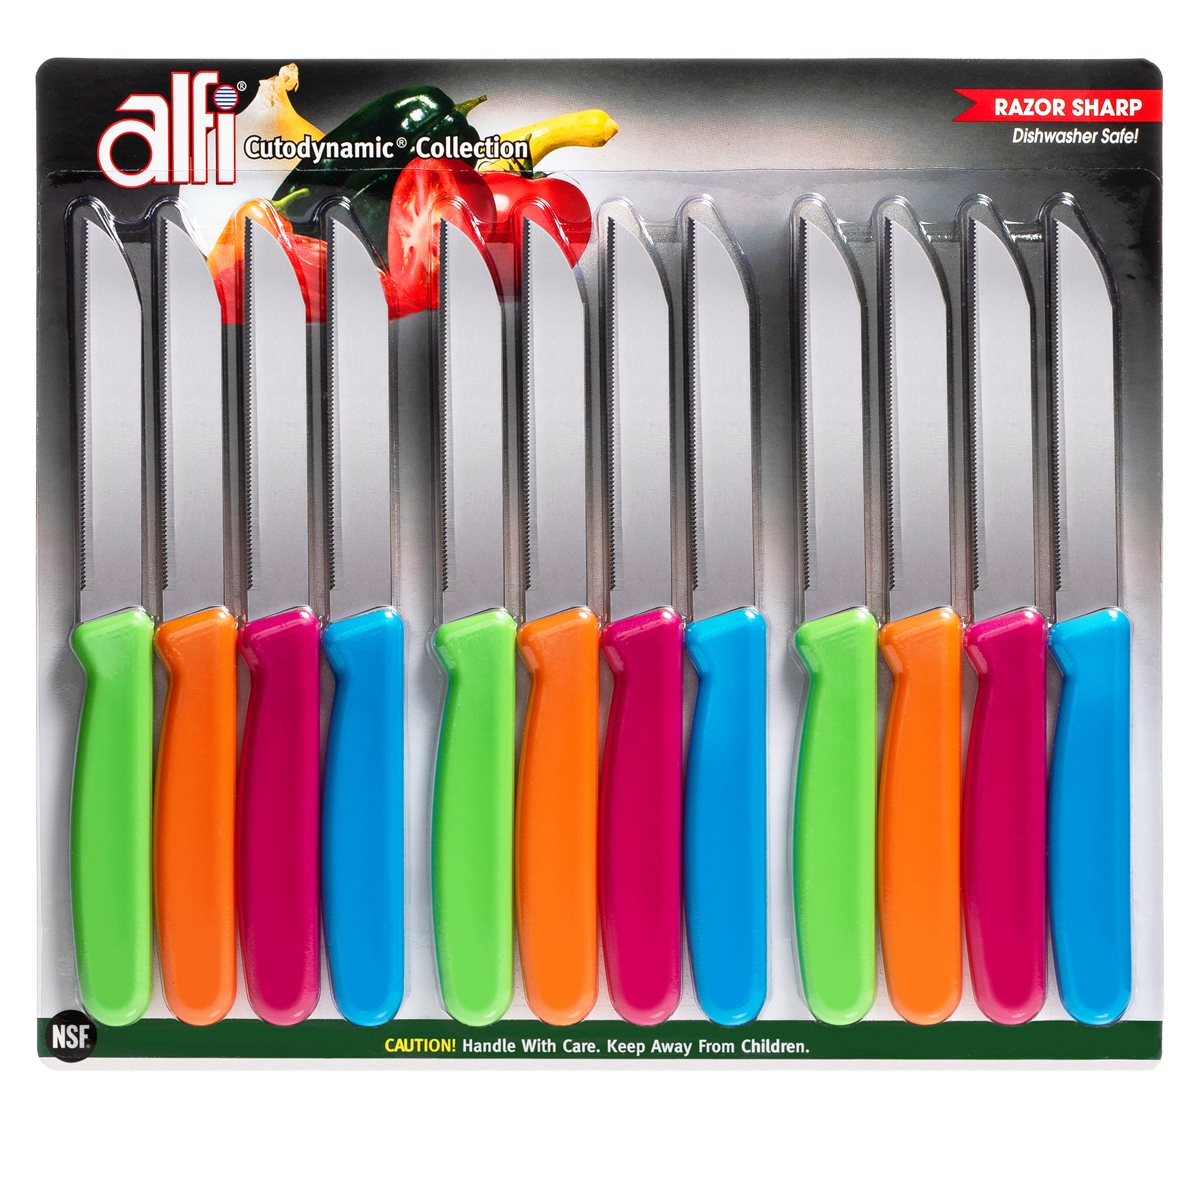 Alfi Cutodynamic High Performance All-purpose Made in USA Knives (Set of 12  Pointed Tip)